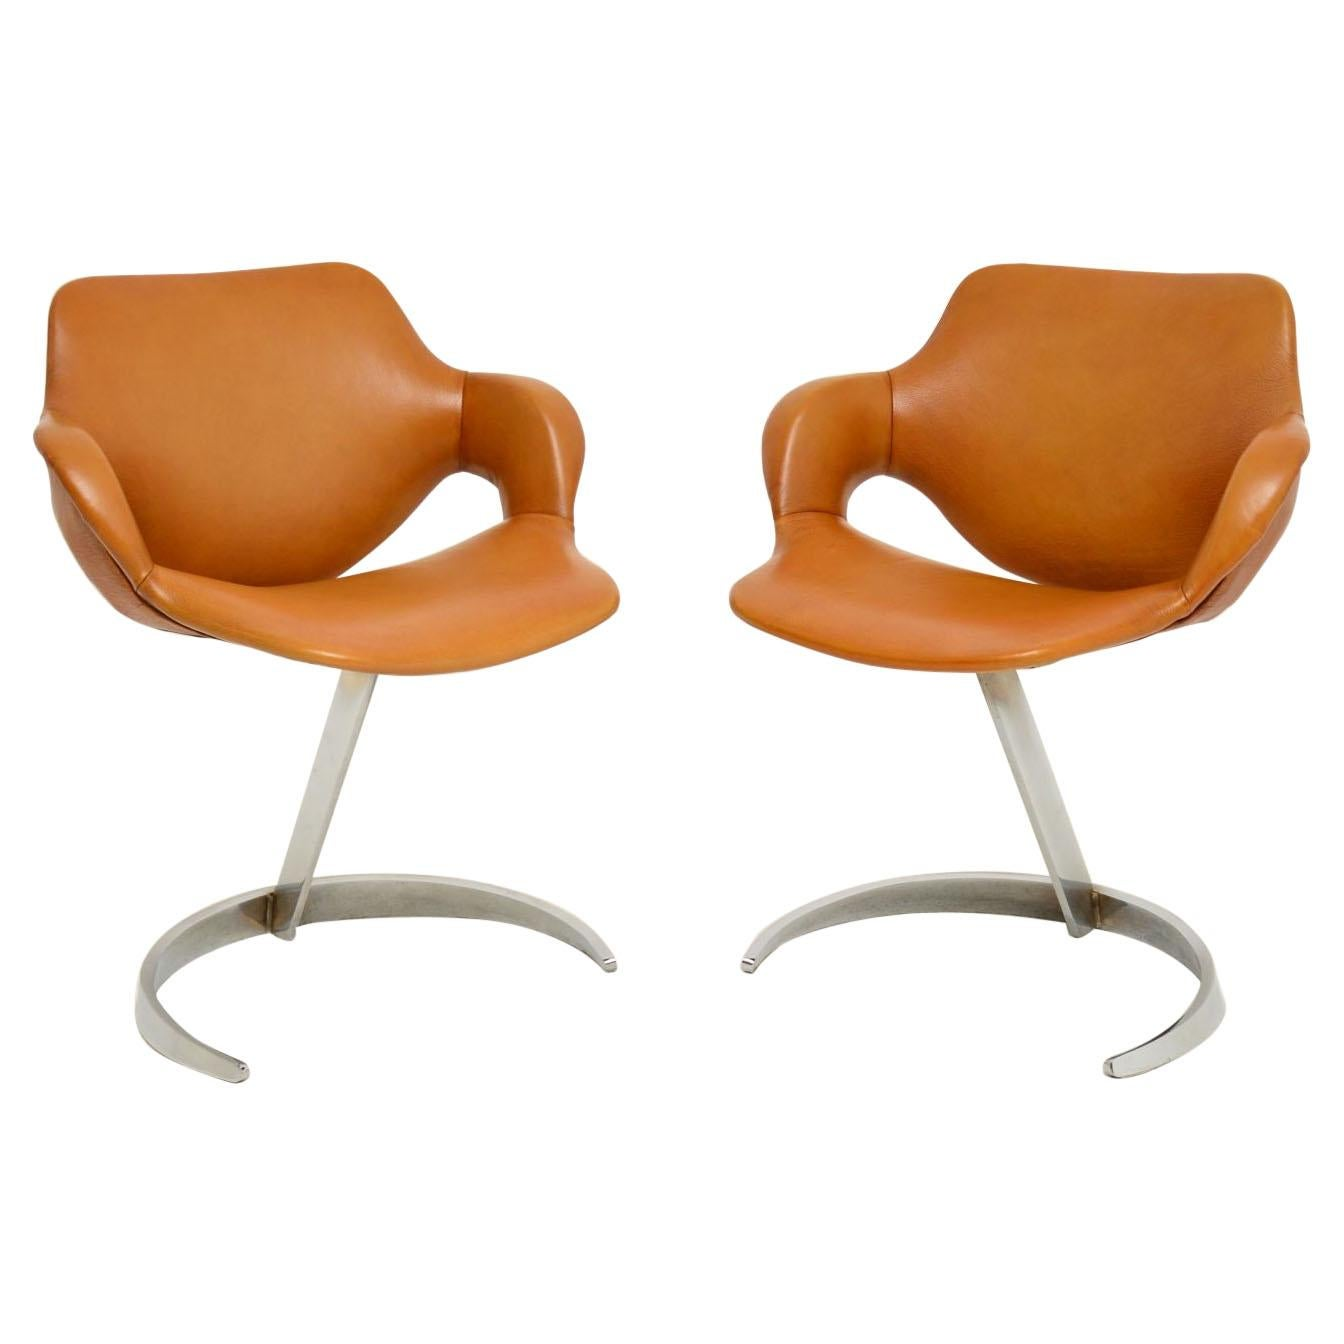 Pair of French Leather and Chrome Scimitar Chairs by Boris Tabacoff